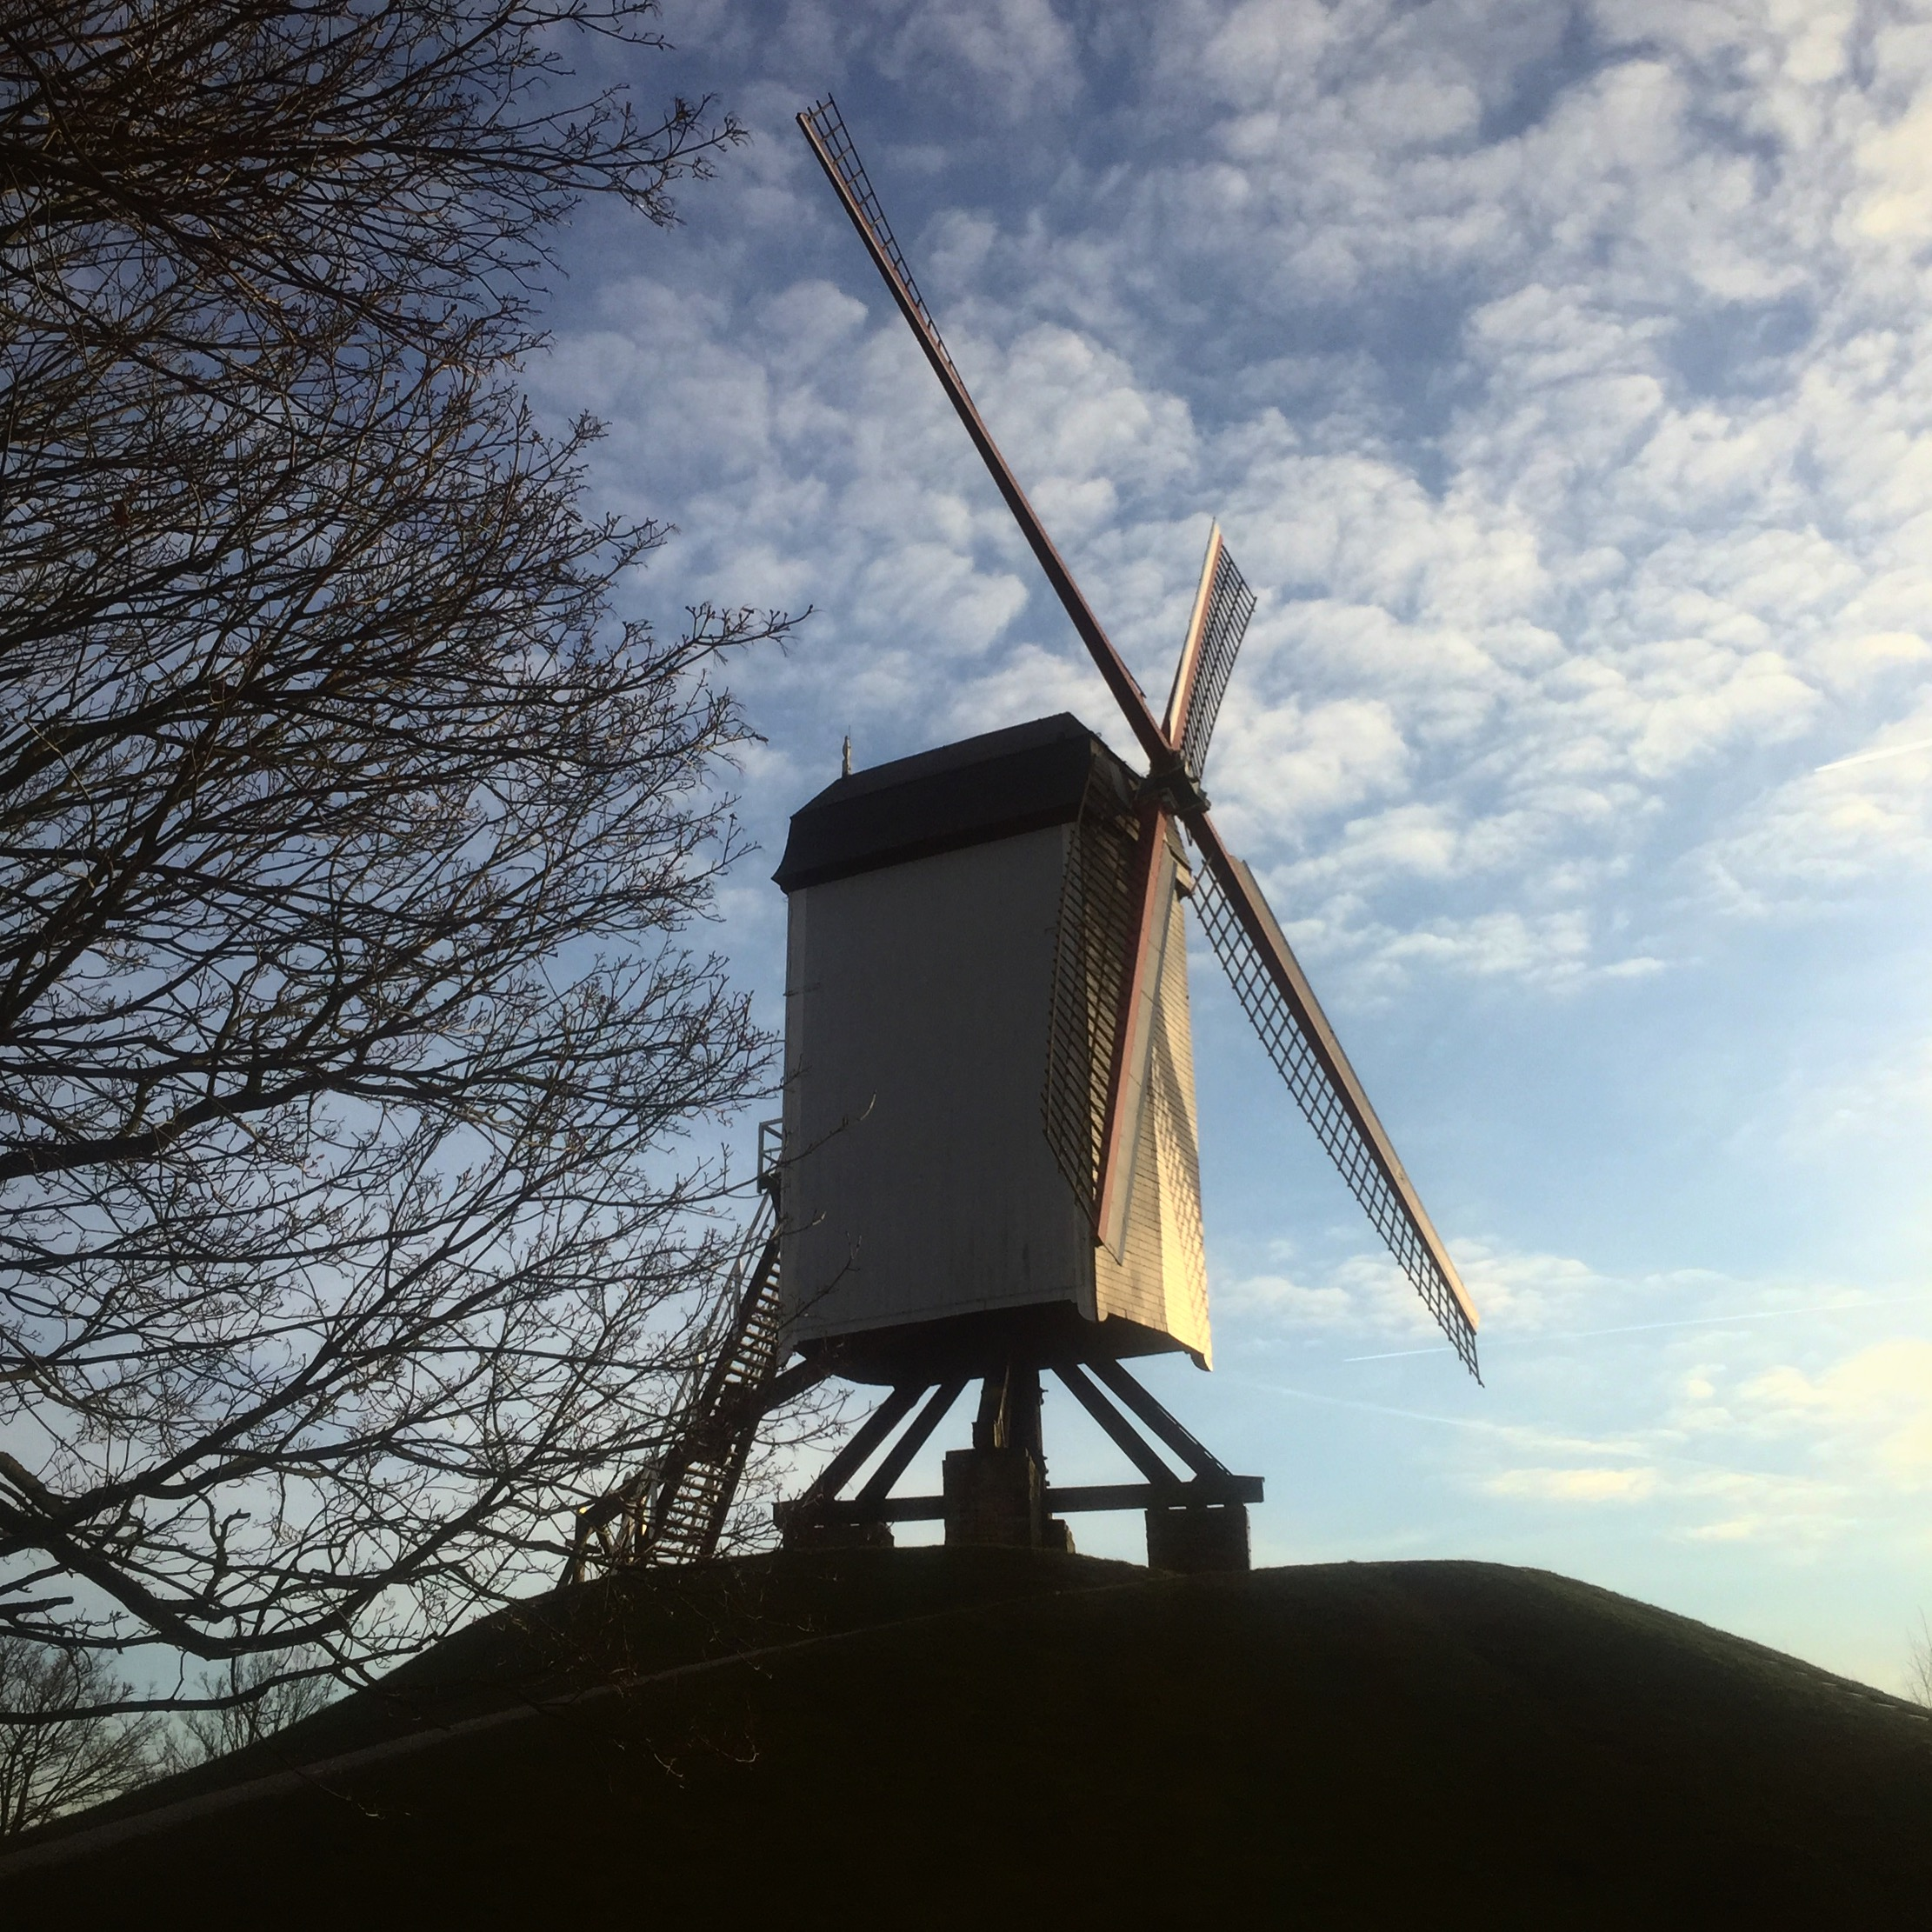 Bonne Chiermolen, one of four remaining timber-stilt windmills in Bruges